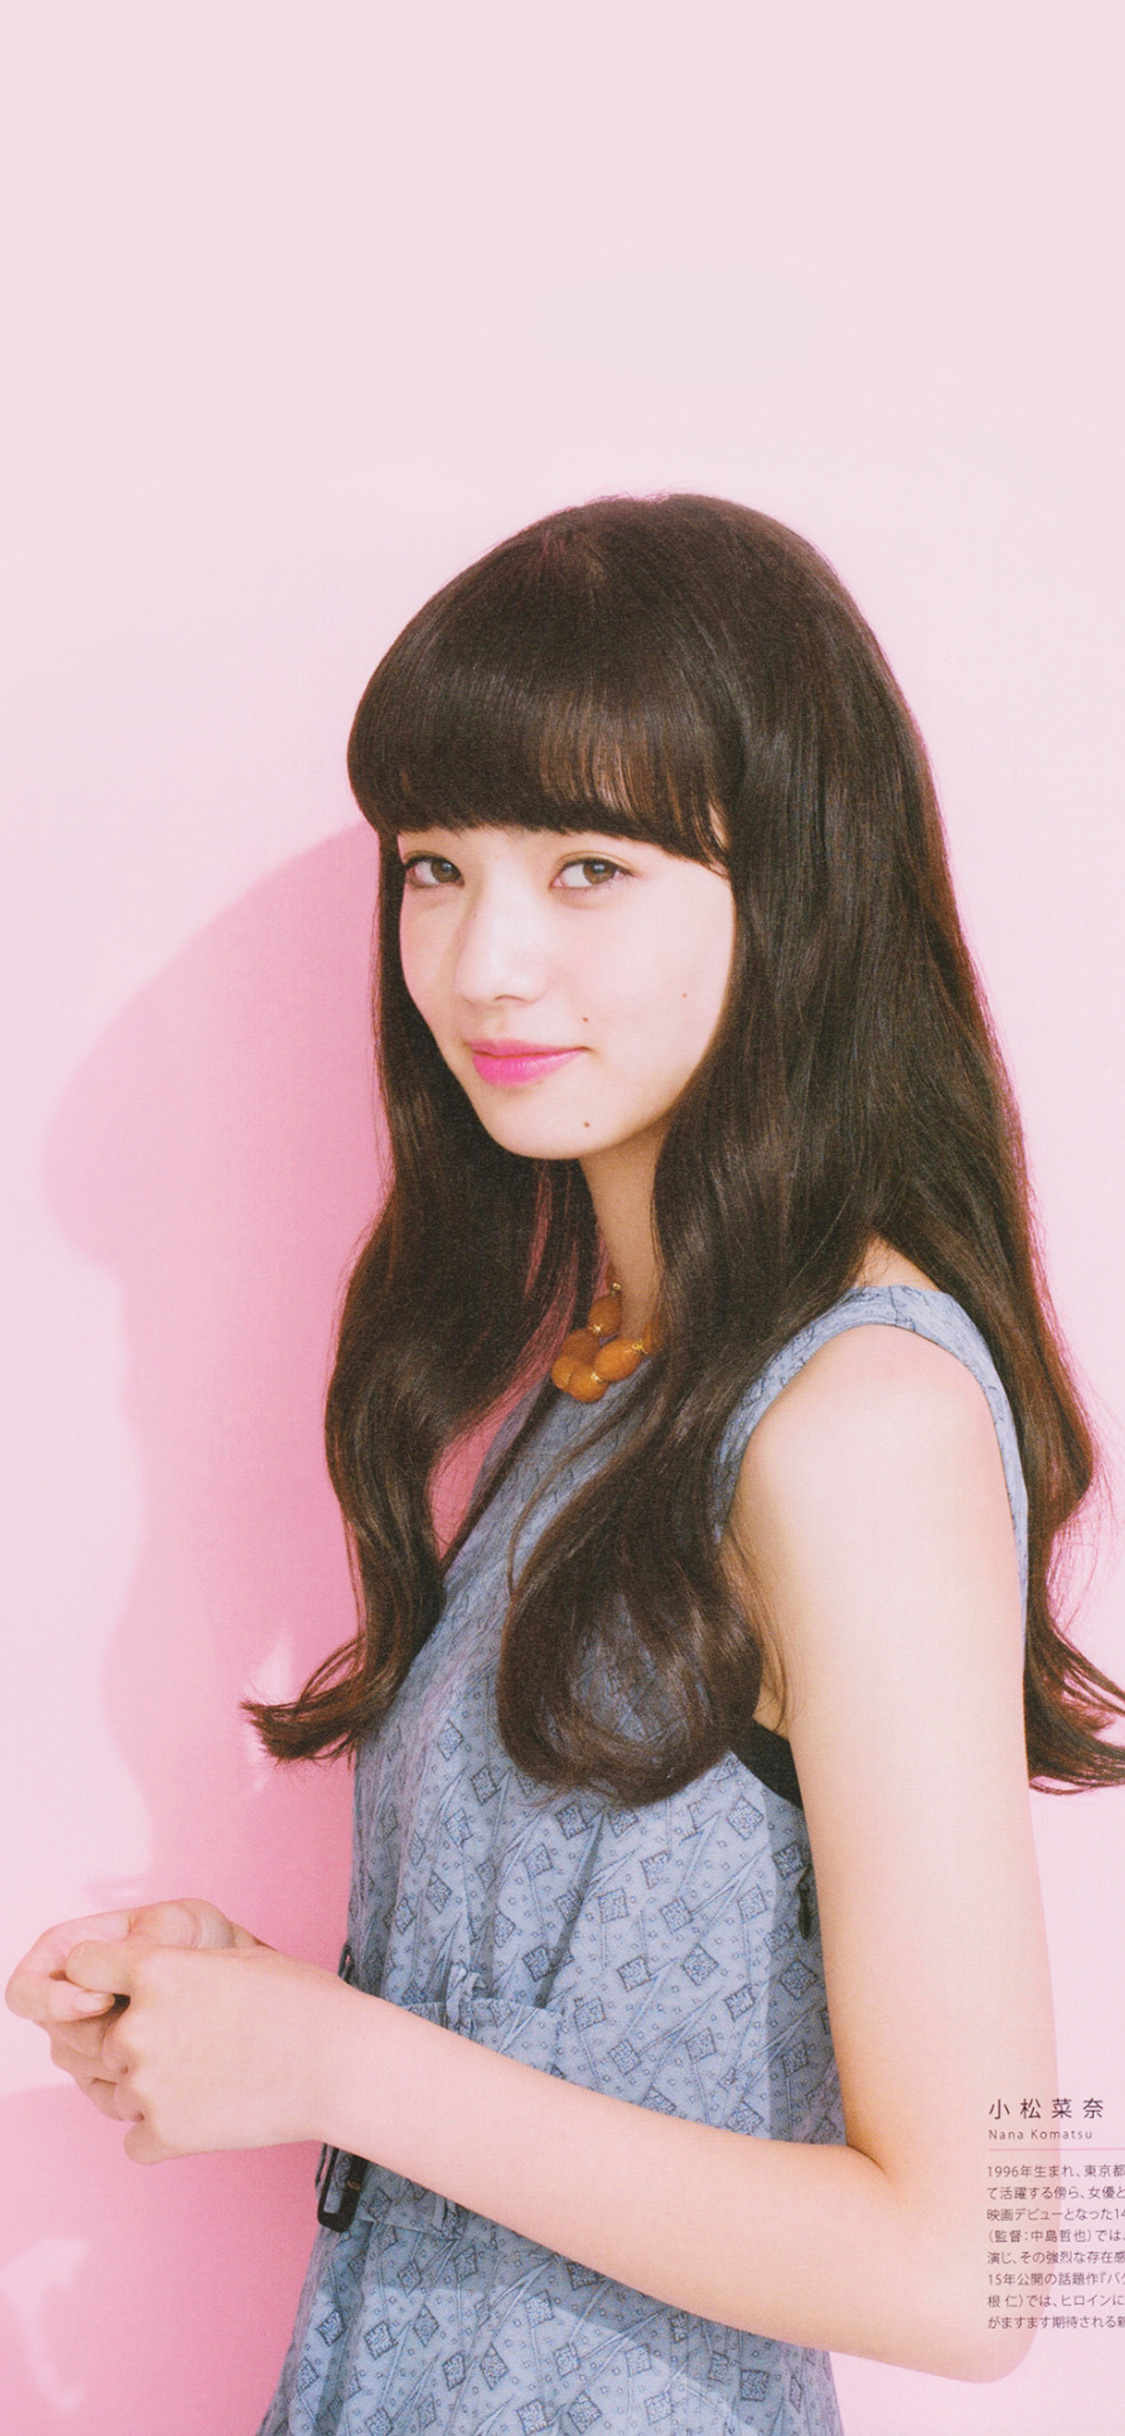 iPhoneXpapers.com-Apple-iPhone-wallpaper-hn41-nana-komatsu-cute-film-asian-girl